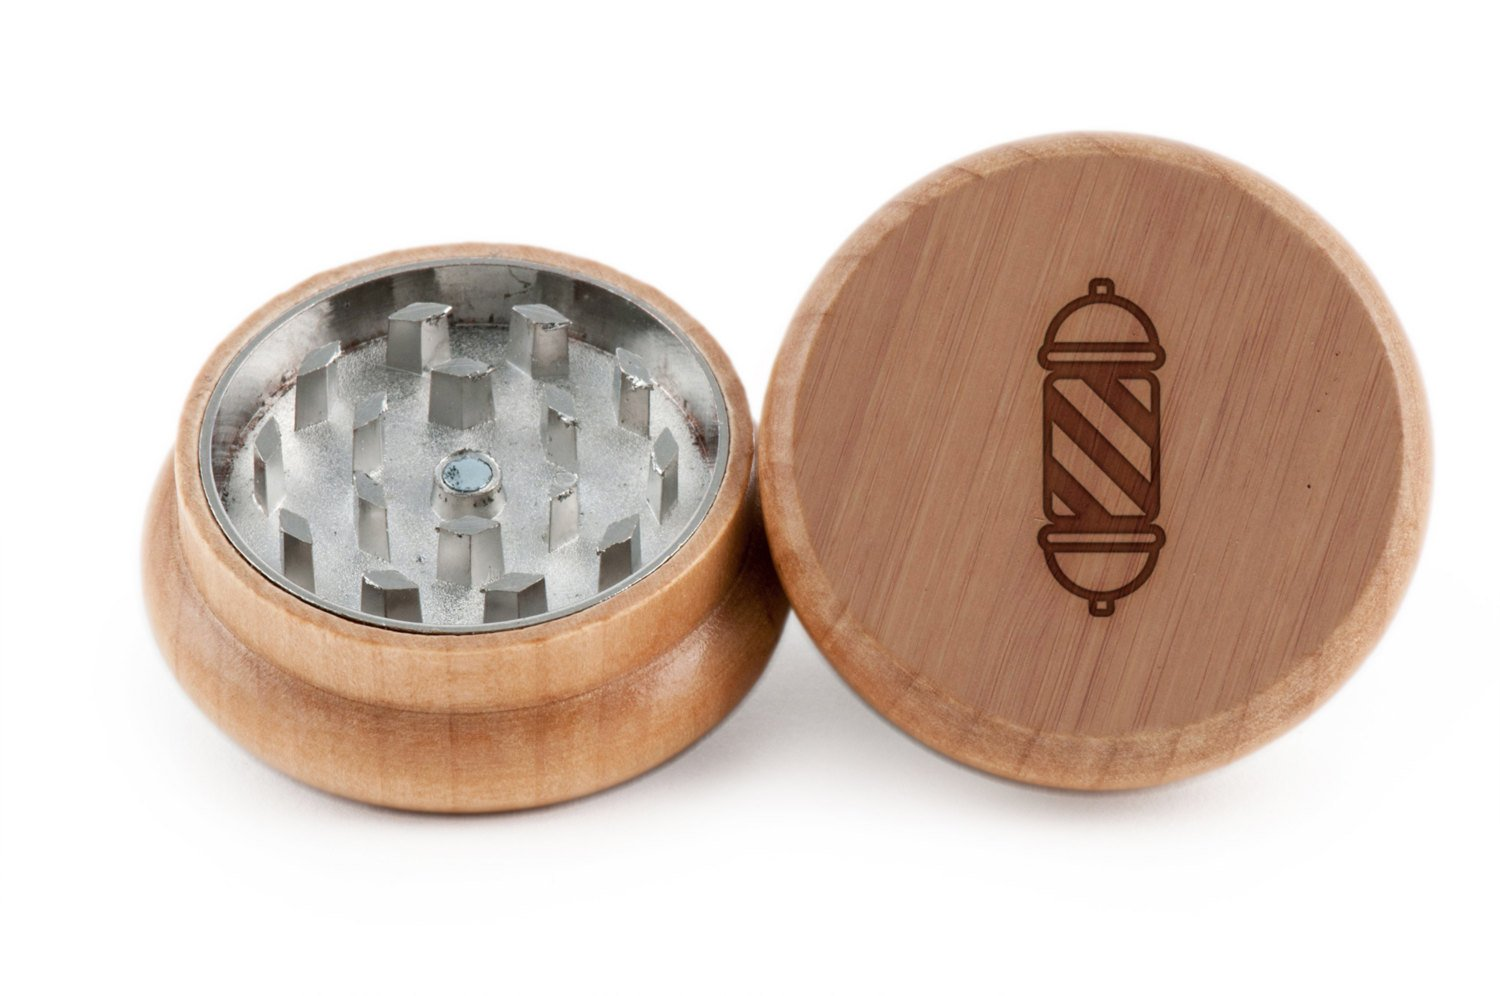 GRINDCANDY Spice And Herb Grinder - Laser Etched Barber Pole Design - Manual Oak Pepper Grinder